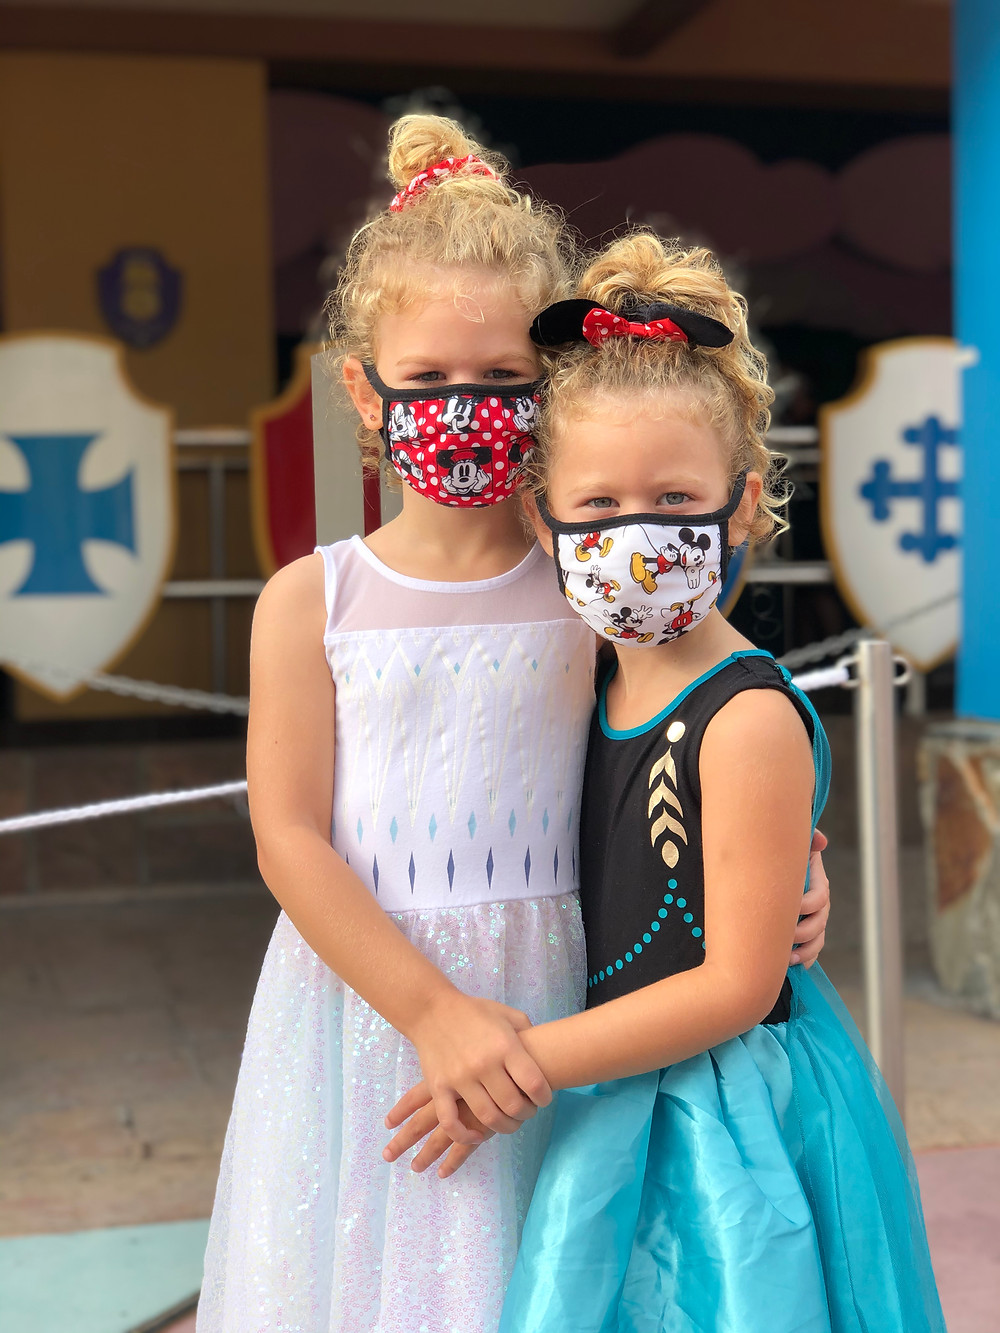 Disney World reopening with kids